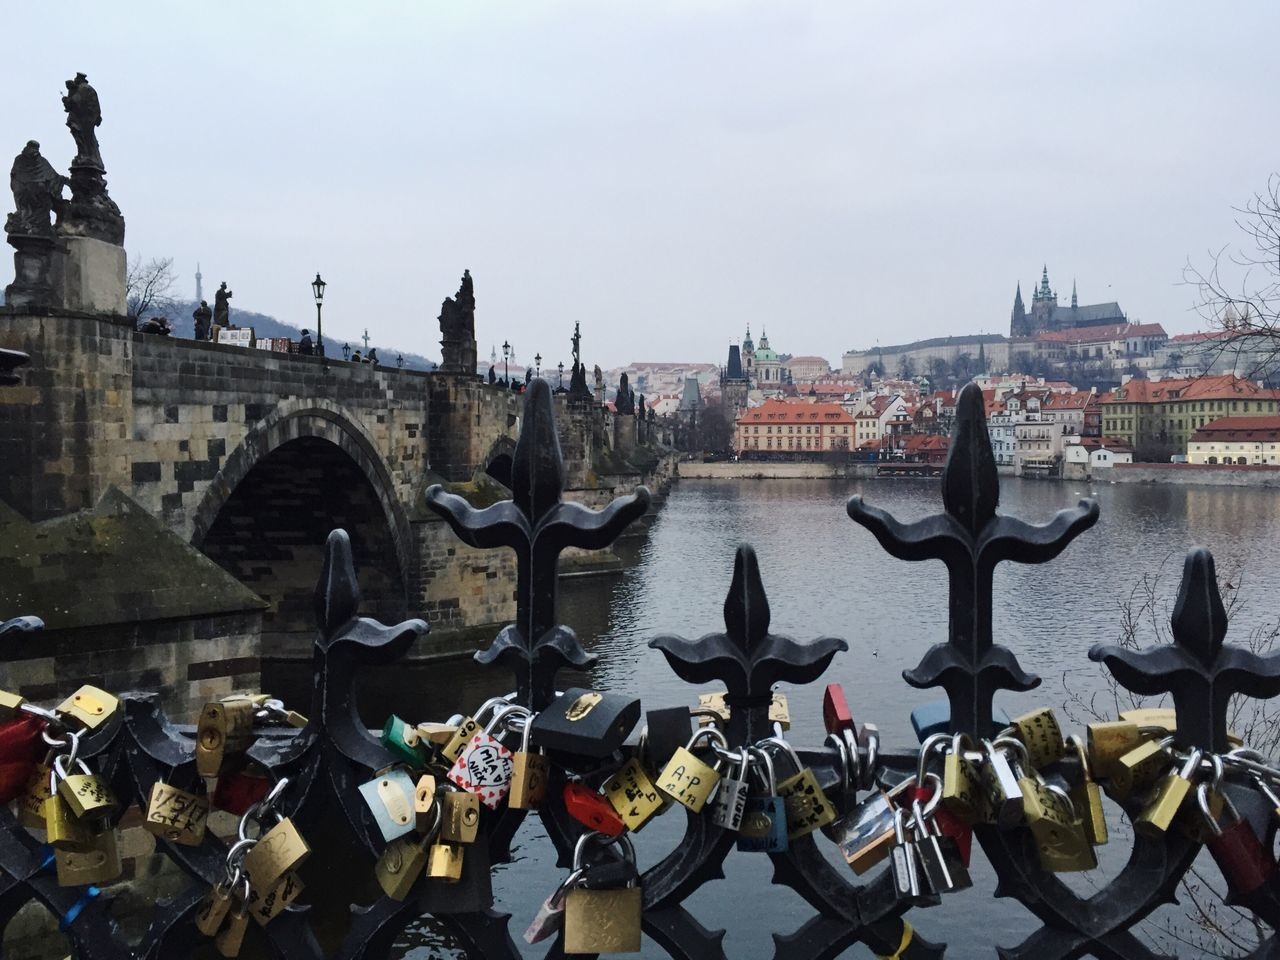 ❤️ Architecture City Sky Day Water Outdoors Love Locks Love Romantic Prague Charles Bridge Cityscape Monument Bridge - Man Made Structure Love Locks Bridge Miles Away City Break Travel Destinations Mobile Photography IPhoneography Czech Republic No People